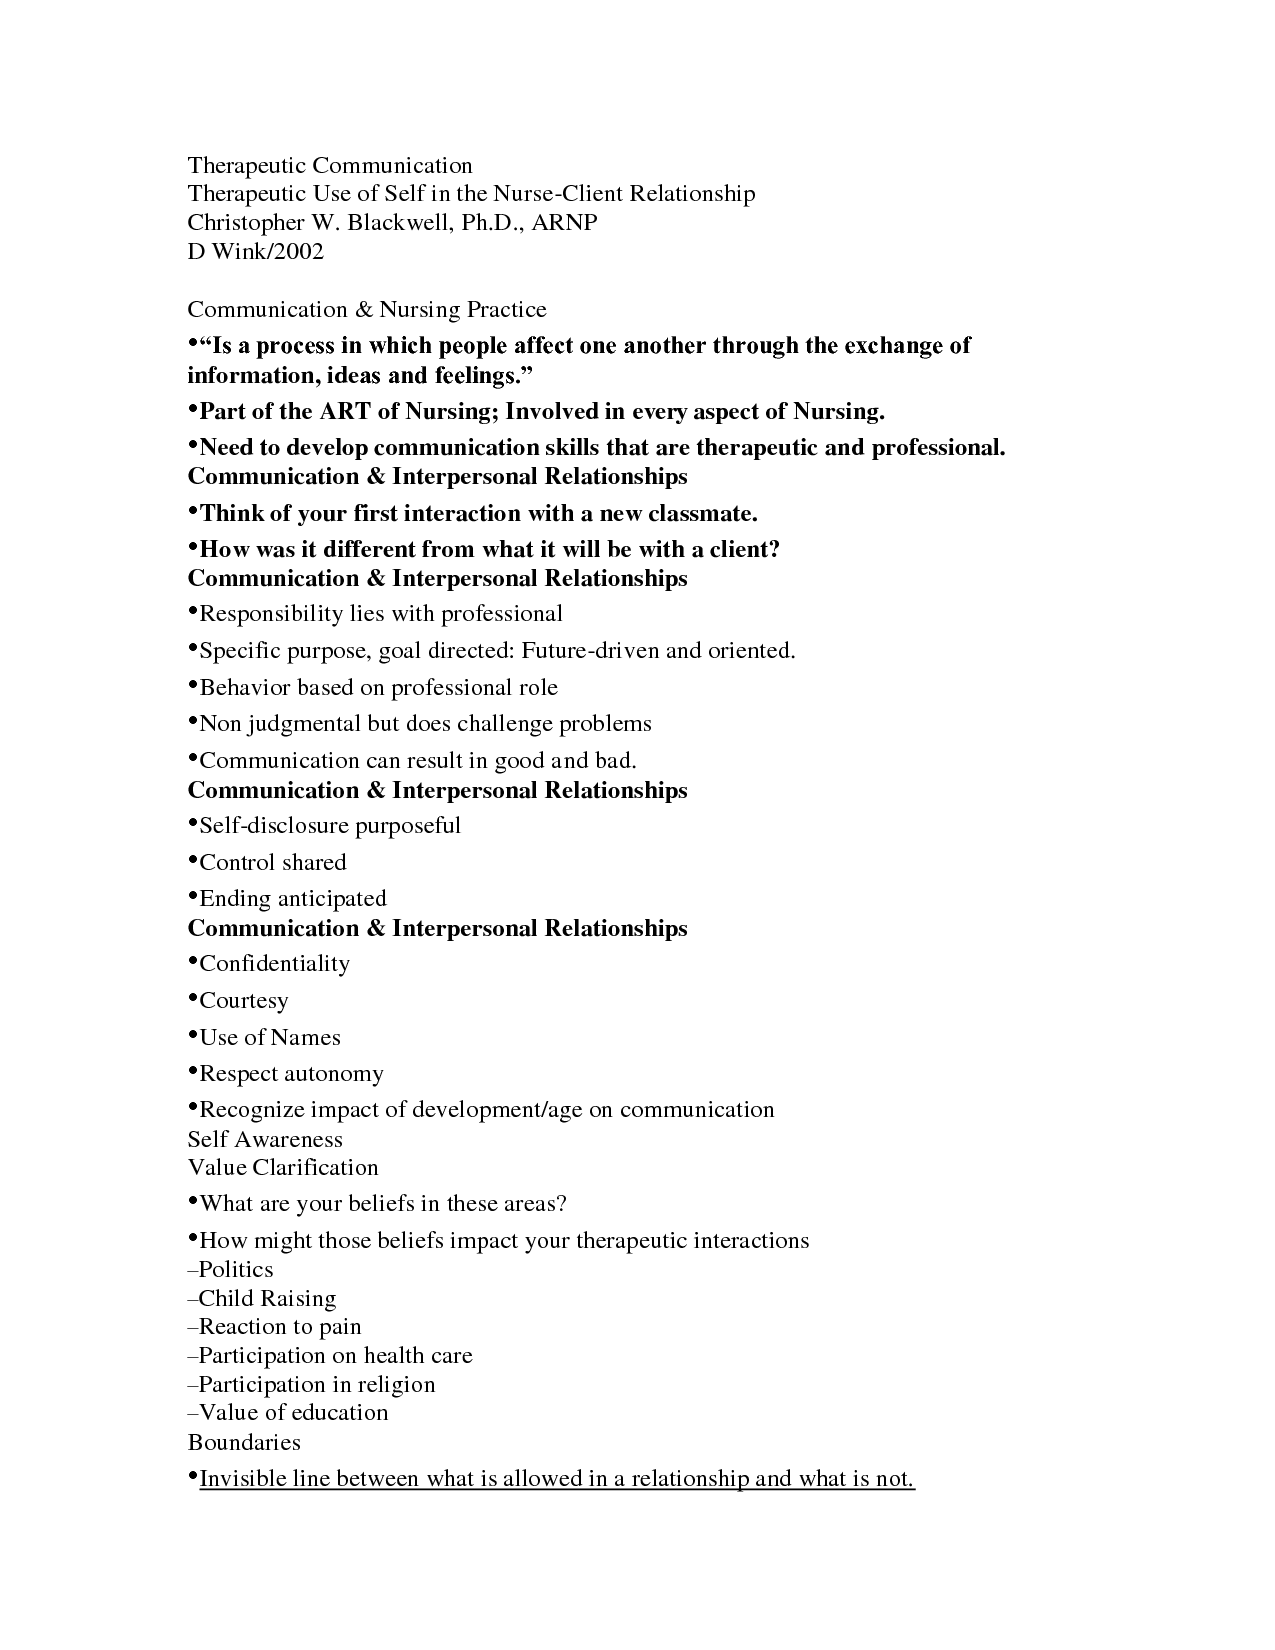 Print Streamlined Guideline For Rn Pt Interaction